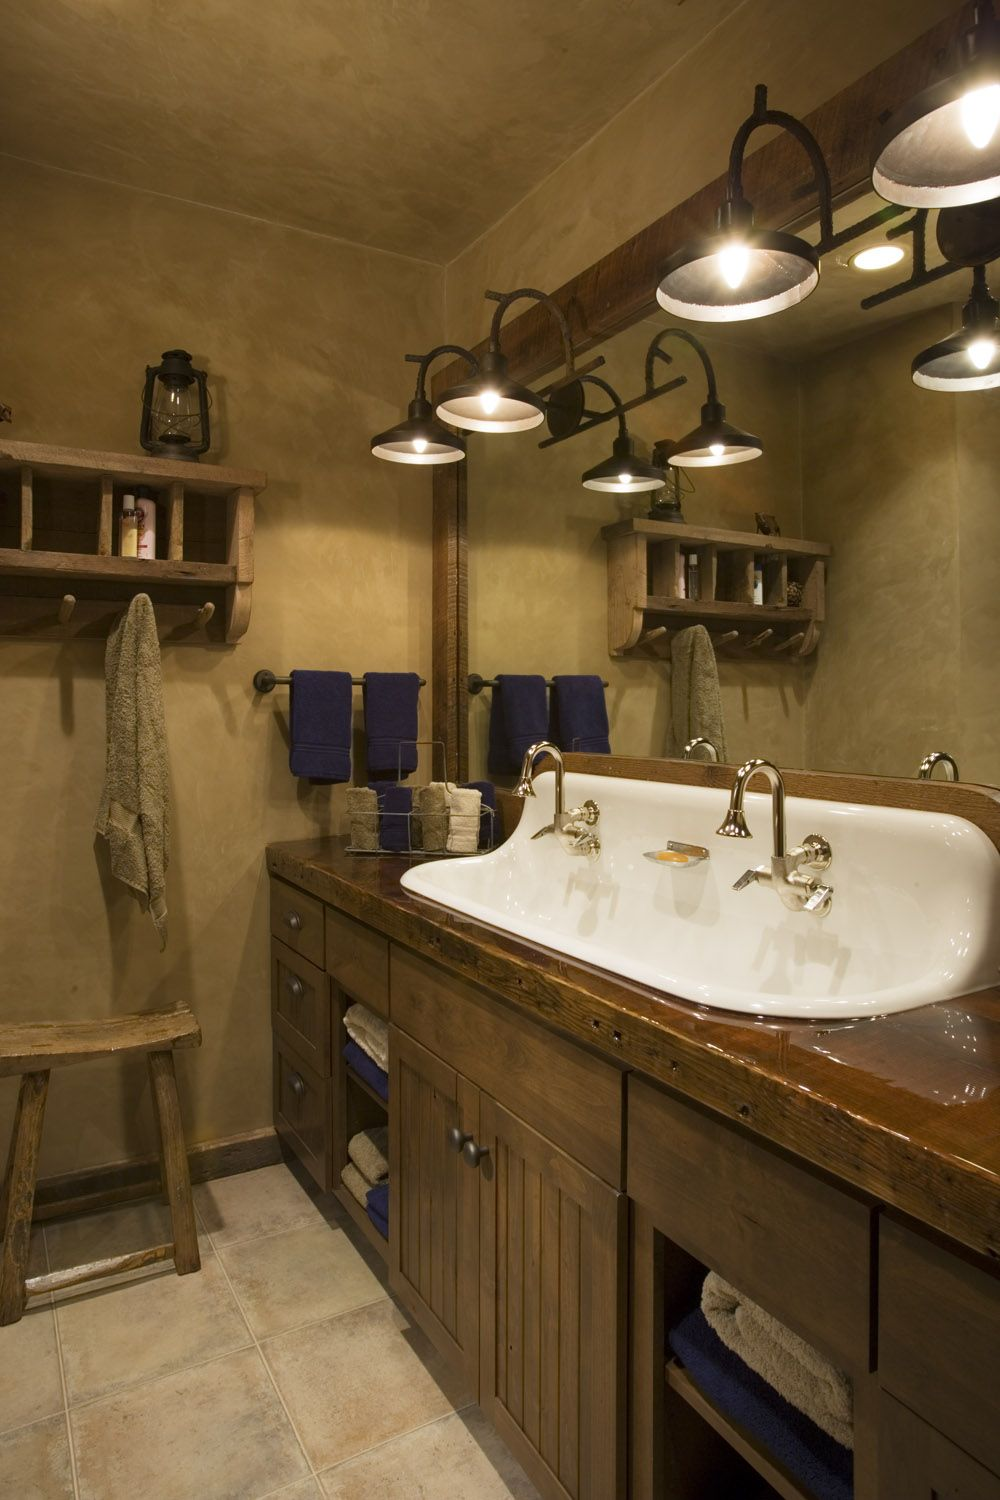 amazing marble countertop sink design and modern faucet.htm castiron 4  sink rustic mountain lodge bathroom wood countertop  sink rustic mountain lodge bathroom